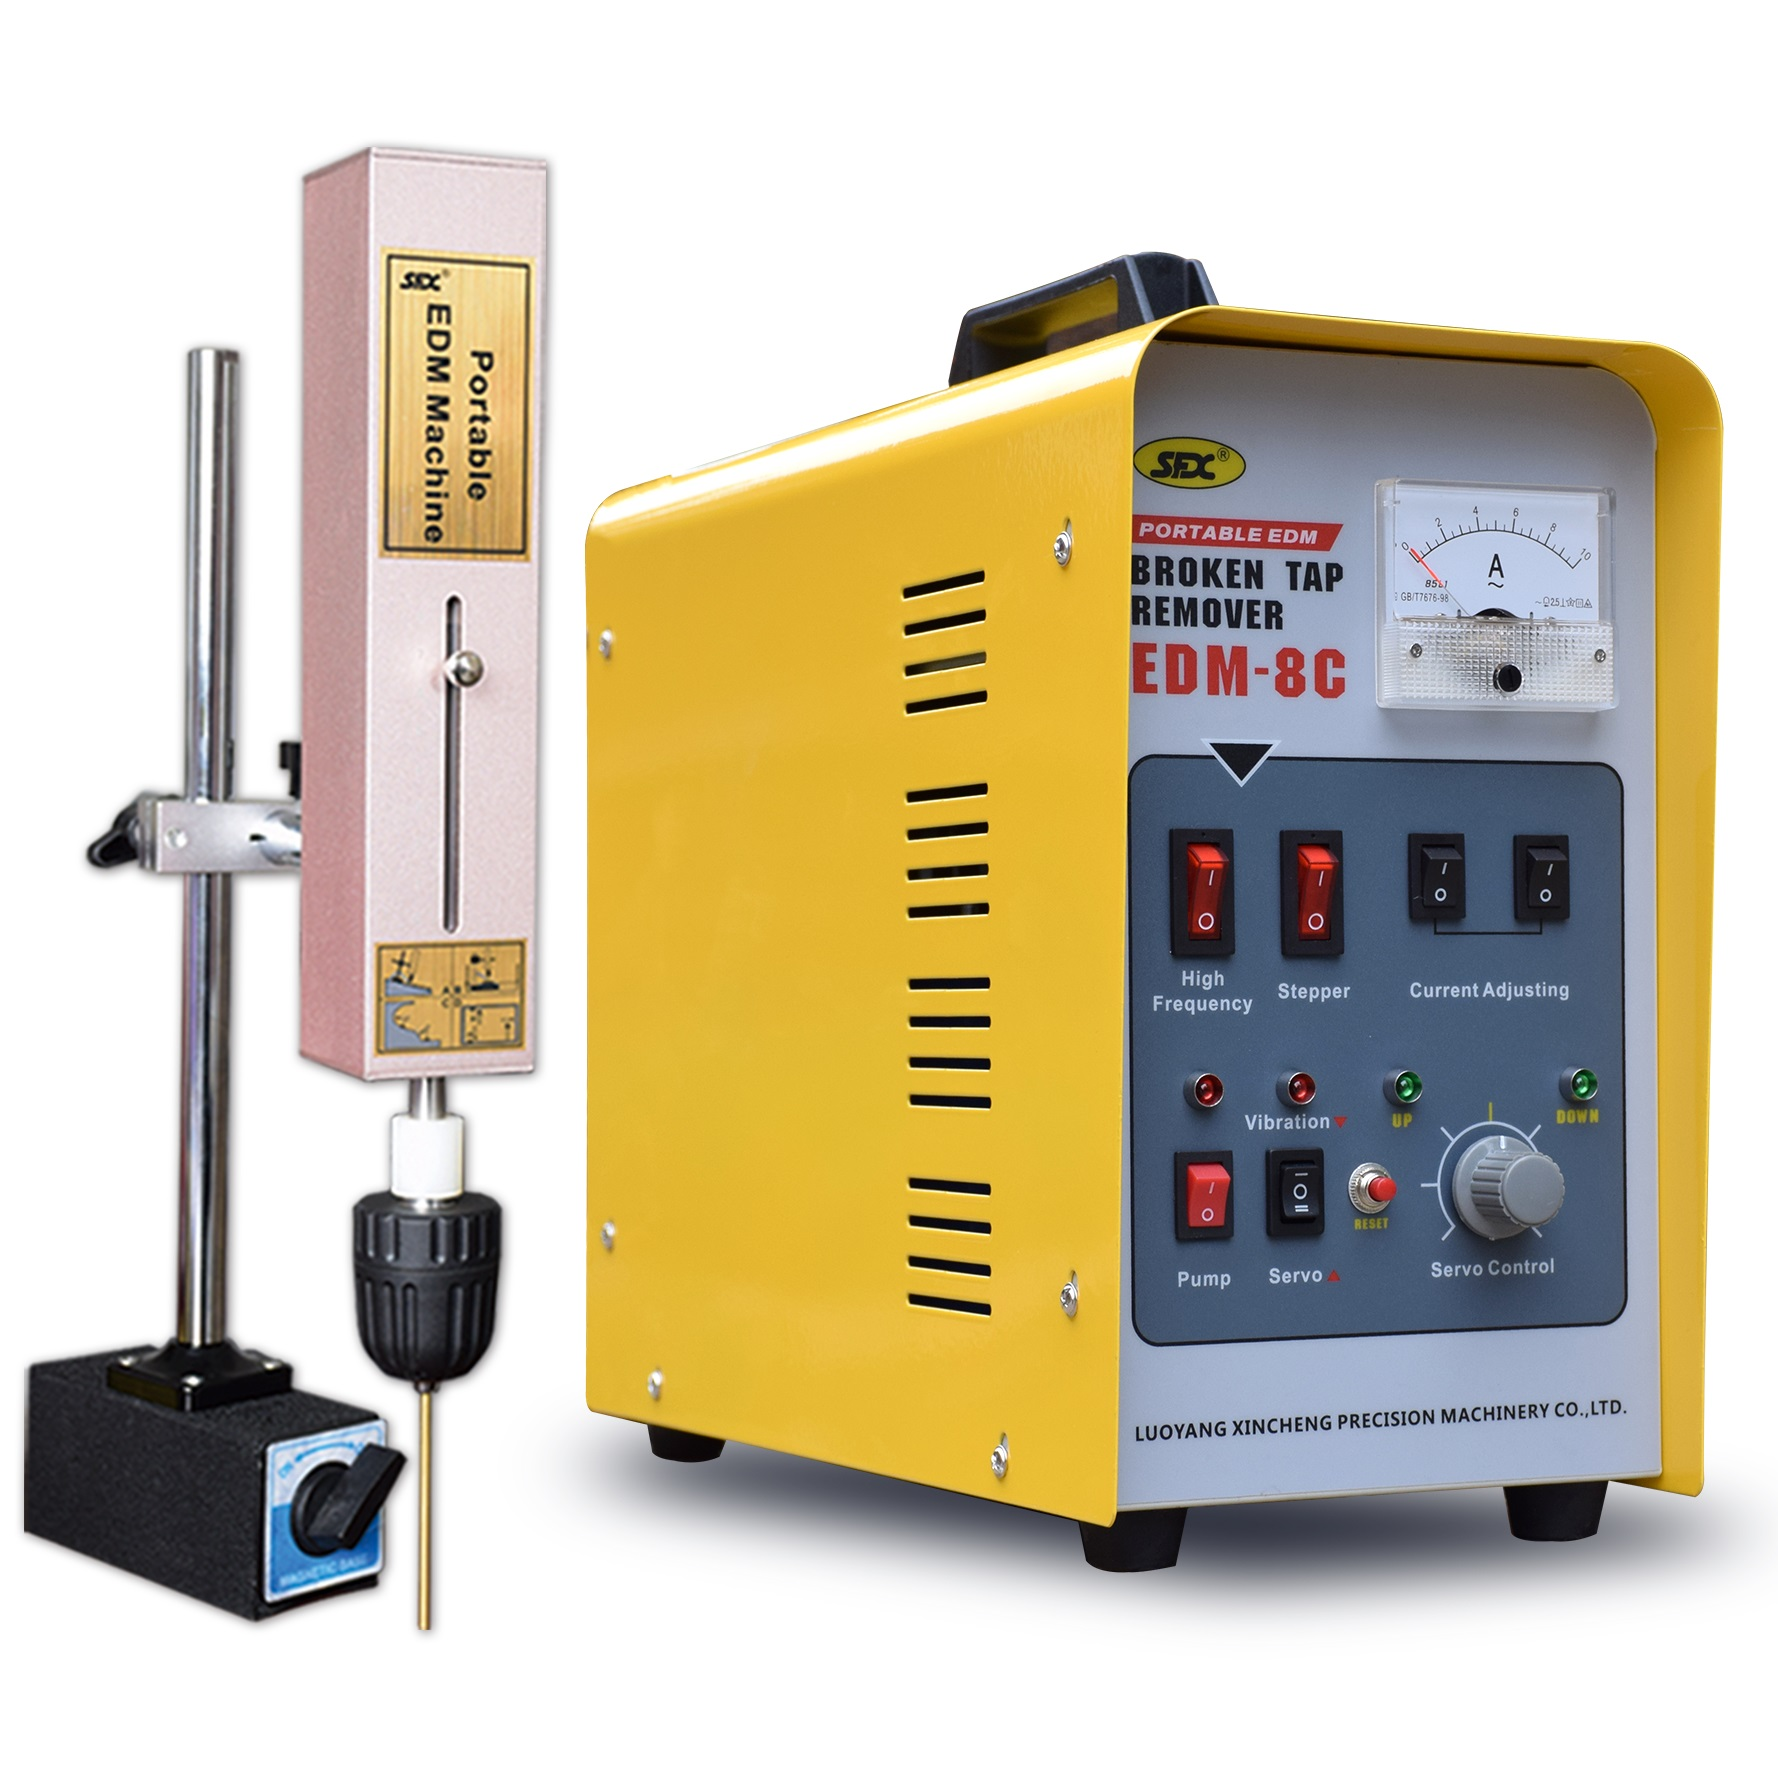 US $1580 0 |800W auto feed stepper current broken tap remover portable EDM  spark eroding machine-in Wire EDM Machine from Tools on Aliexpress com |